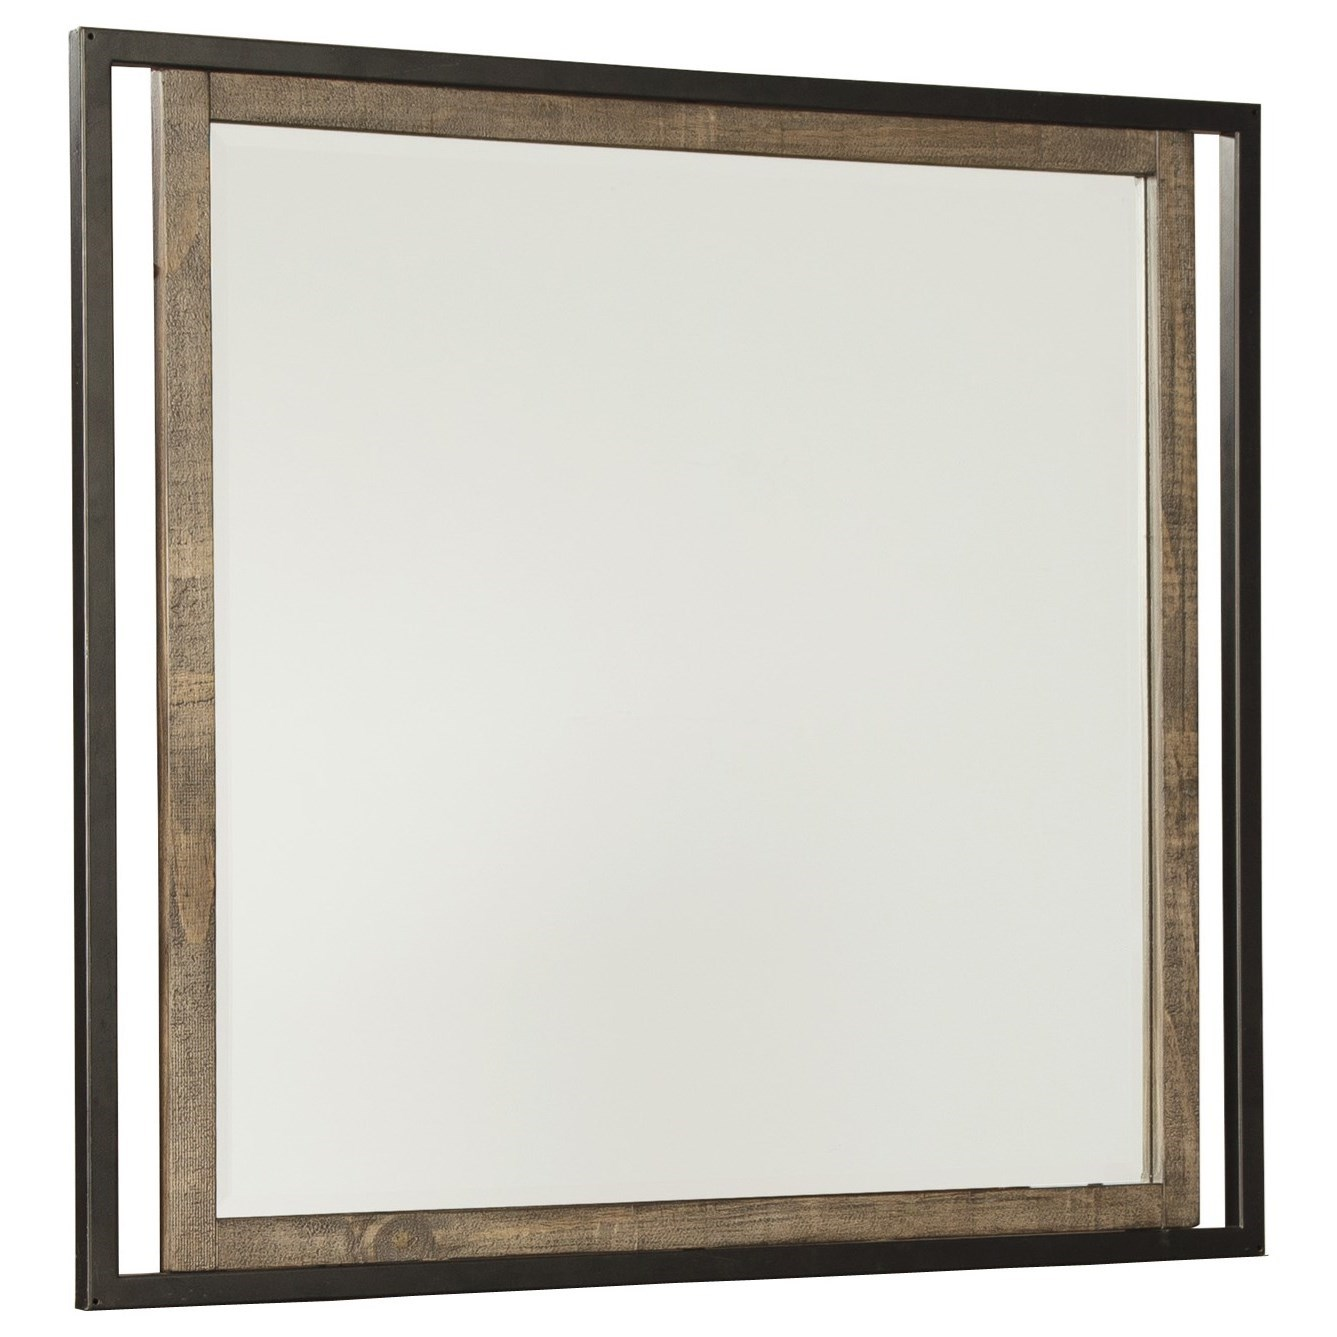 Cazentine Bedroom Mirror by Signature Design by Ashley at Lapeer Furniture & Mattress Center